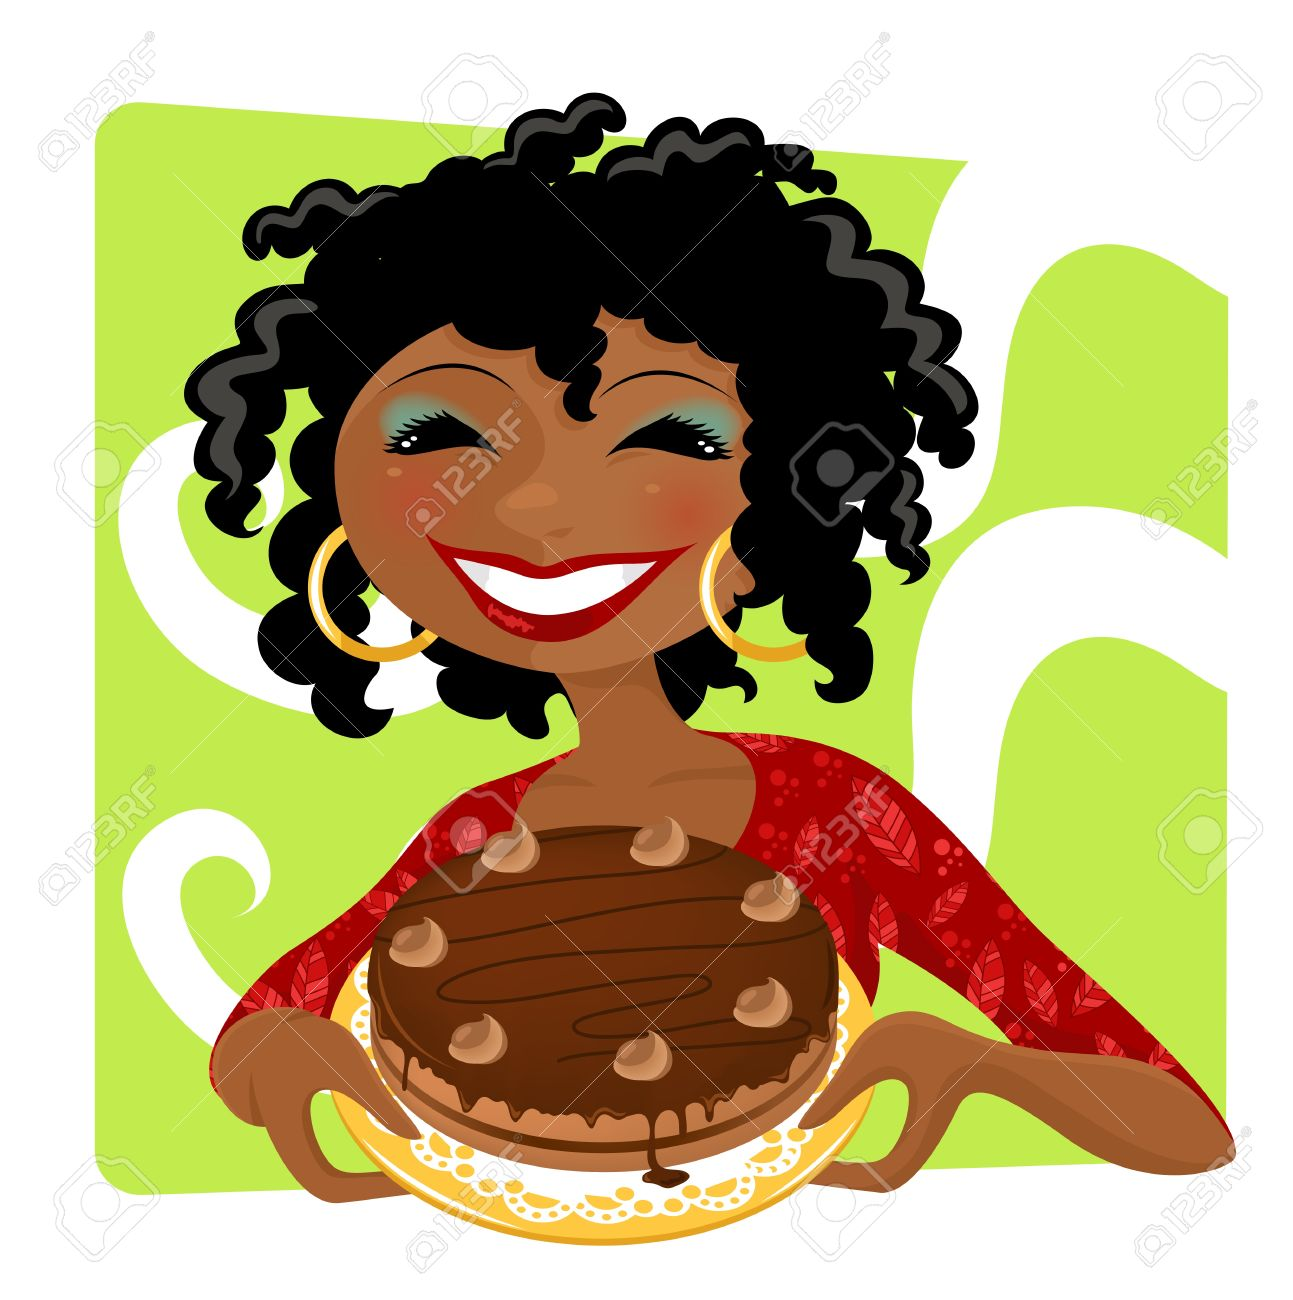 Black women afro puff chef clipart svg library Collection of Afro clipart | Free download best Afro clipart on ... svg library